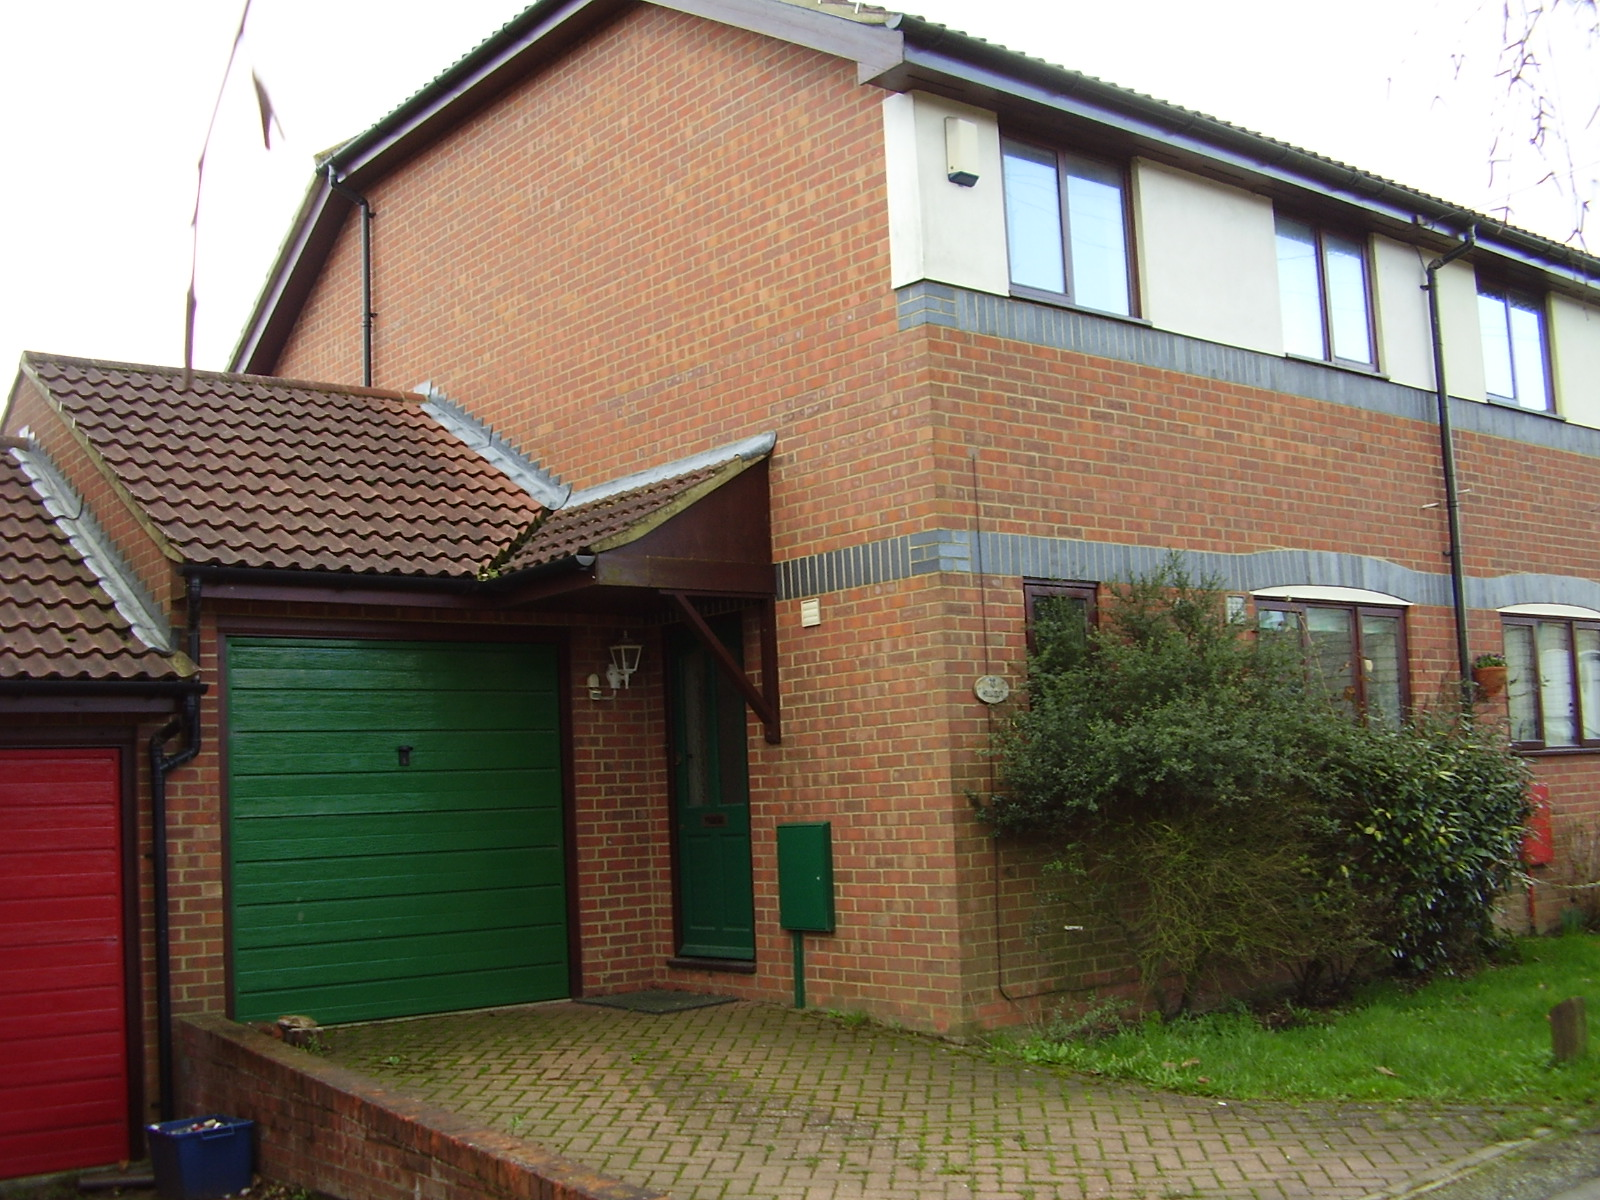 3 Bedroom Part Furnished House To Rent On Hillcrest, Ashford, TN23 By  Private ...